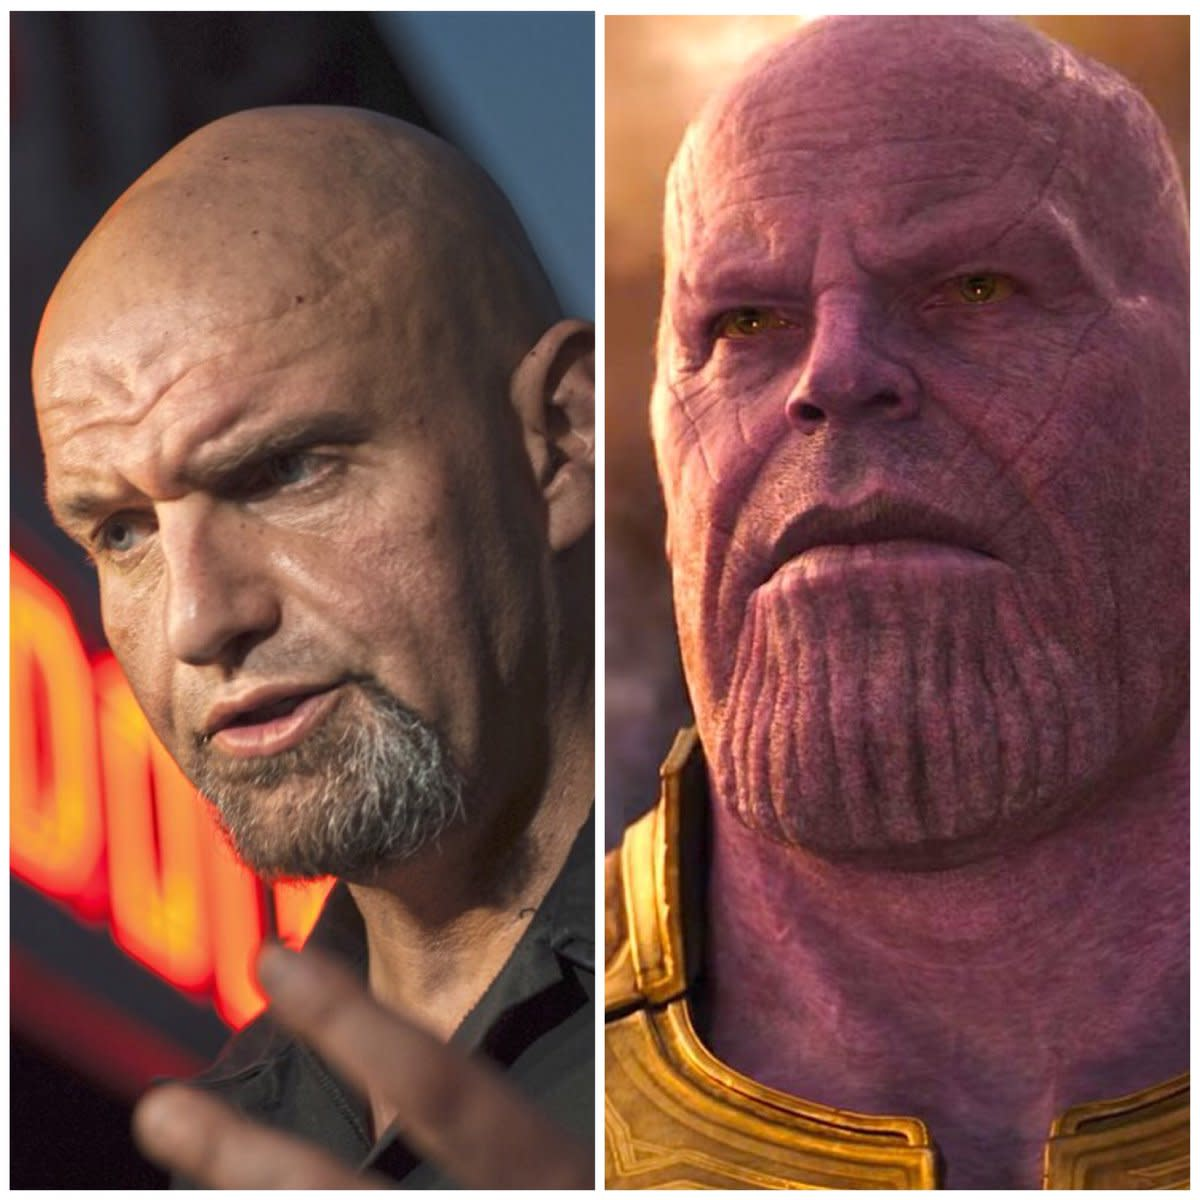 Fetterman and Thanos